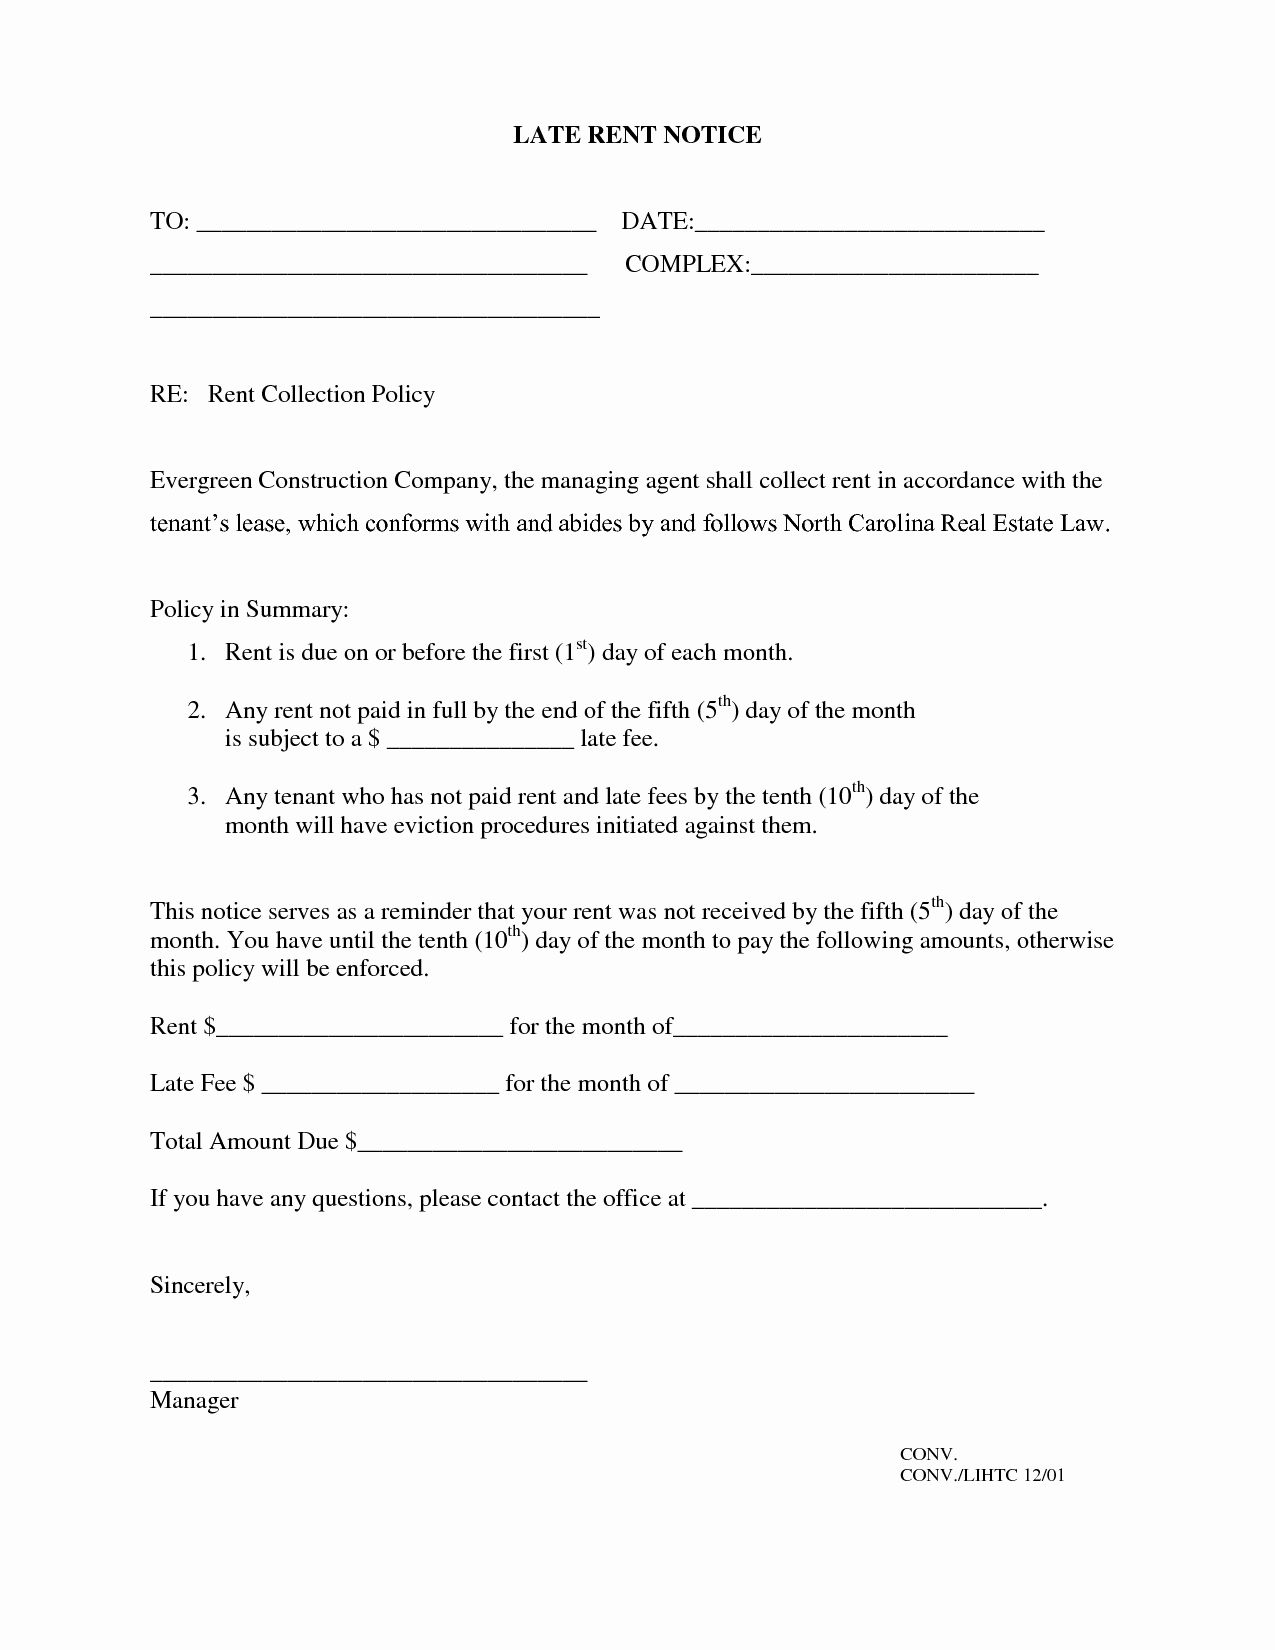 40 late rent notice template in 2020 late rent notice